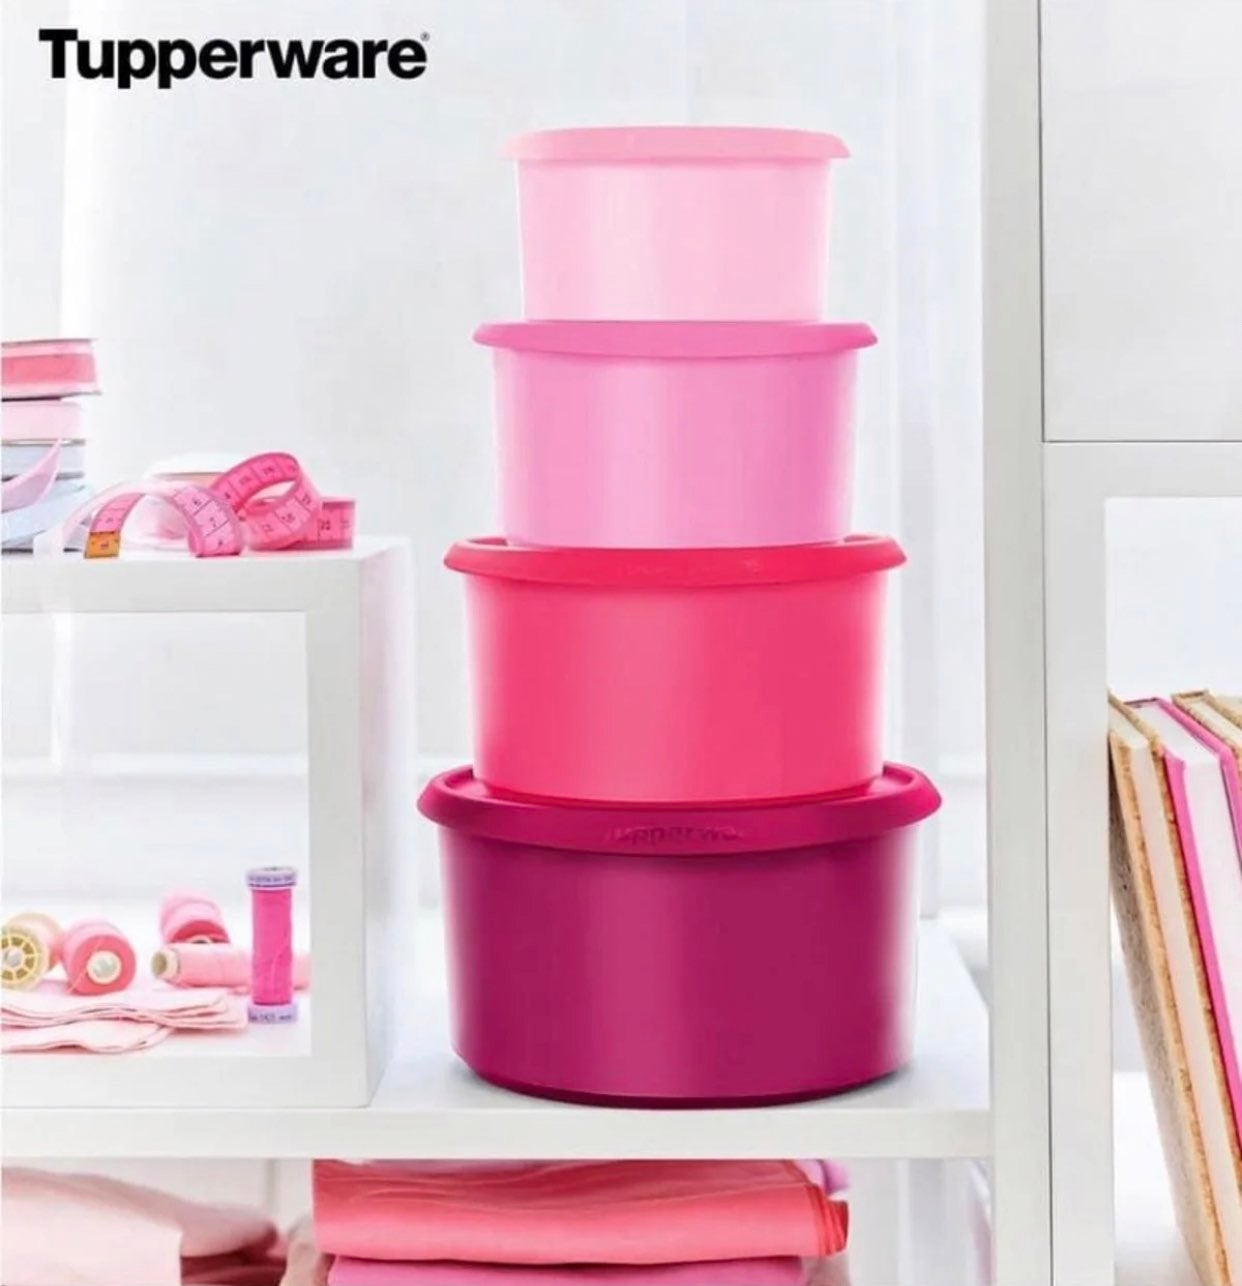 New!!!! Tupperware one touch canister